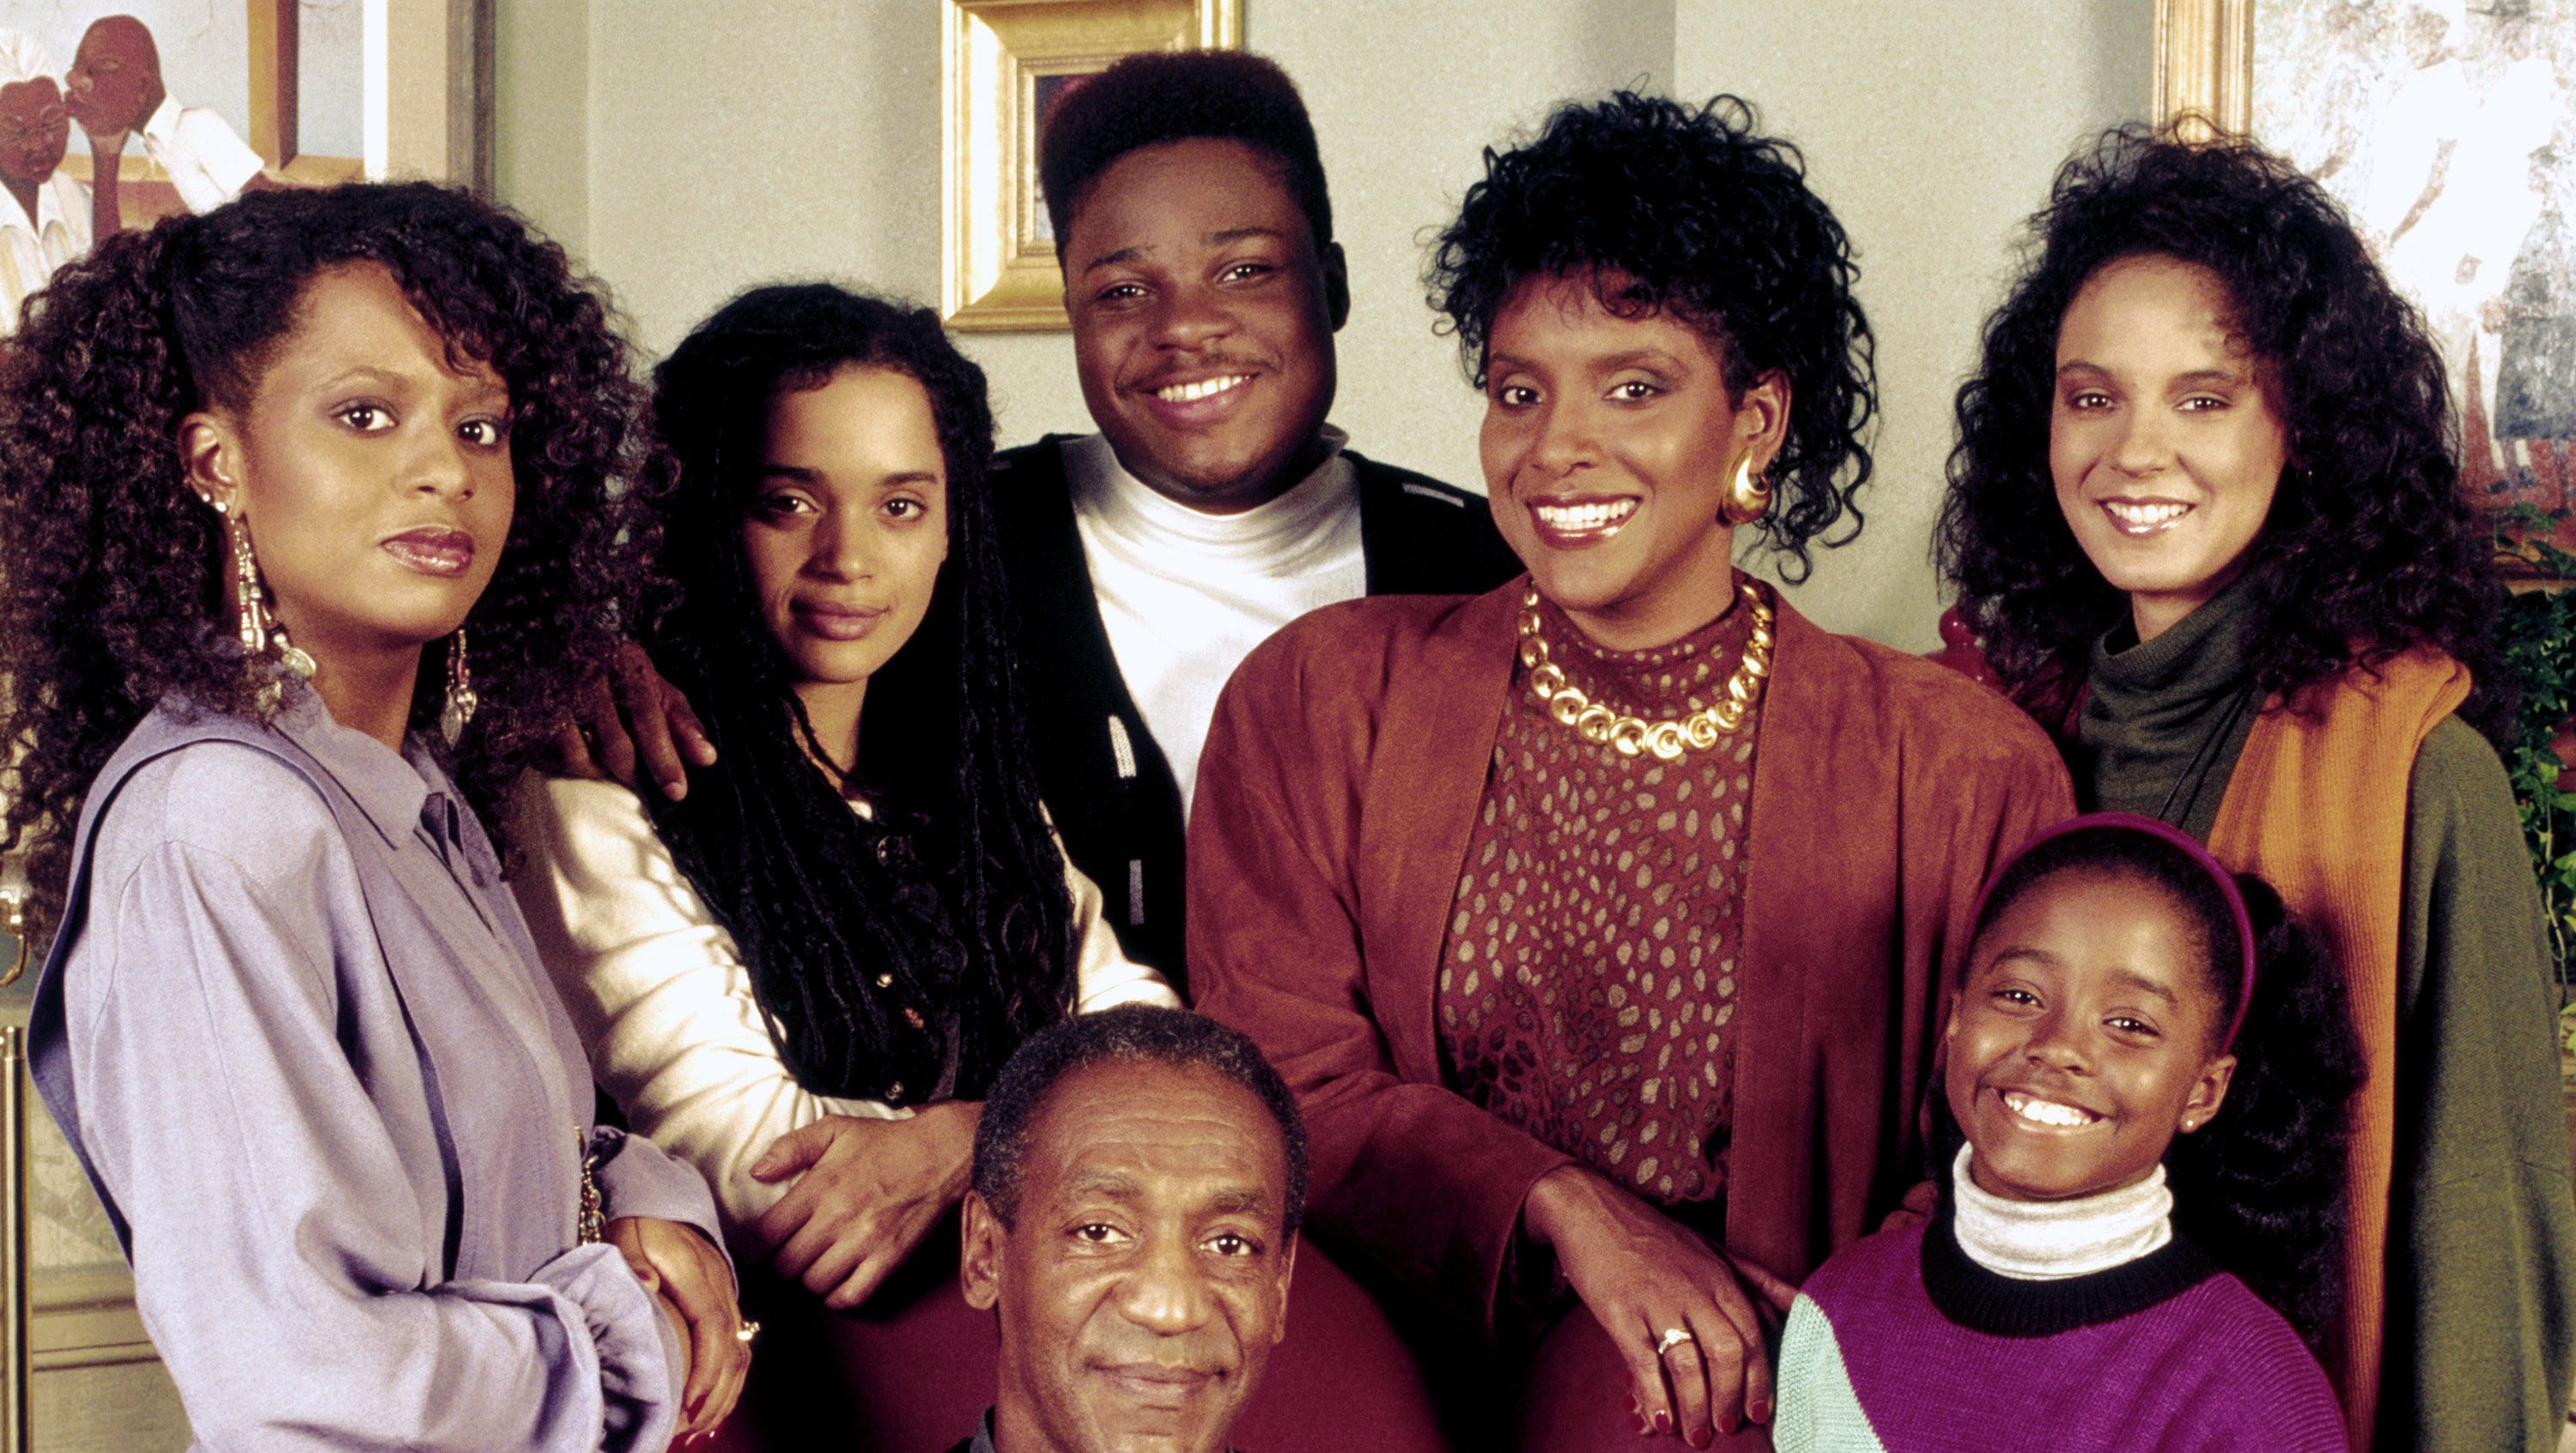 Adam Sandler Cosby Show what 30 years of 'the cosby show' taught us